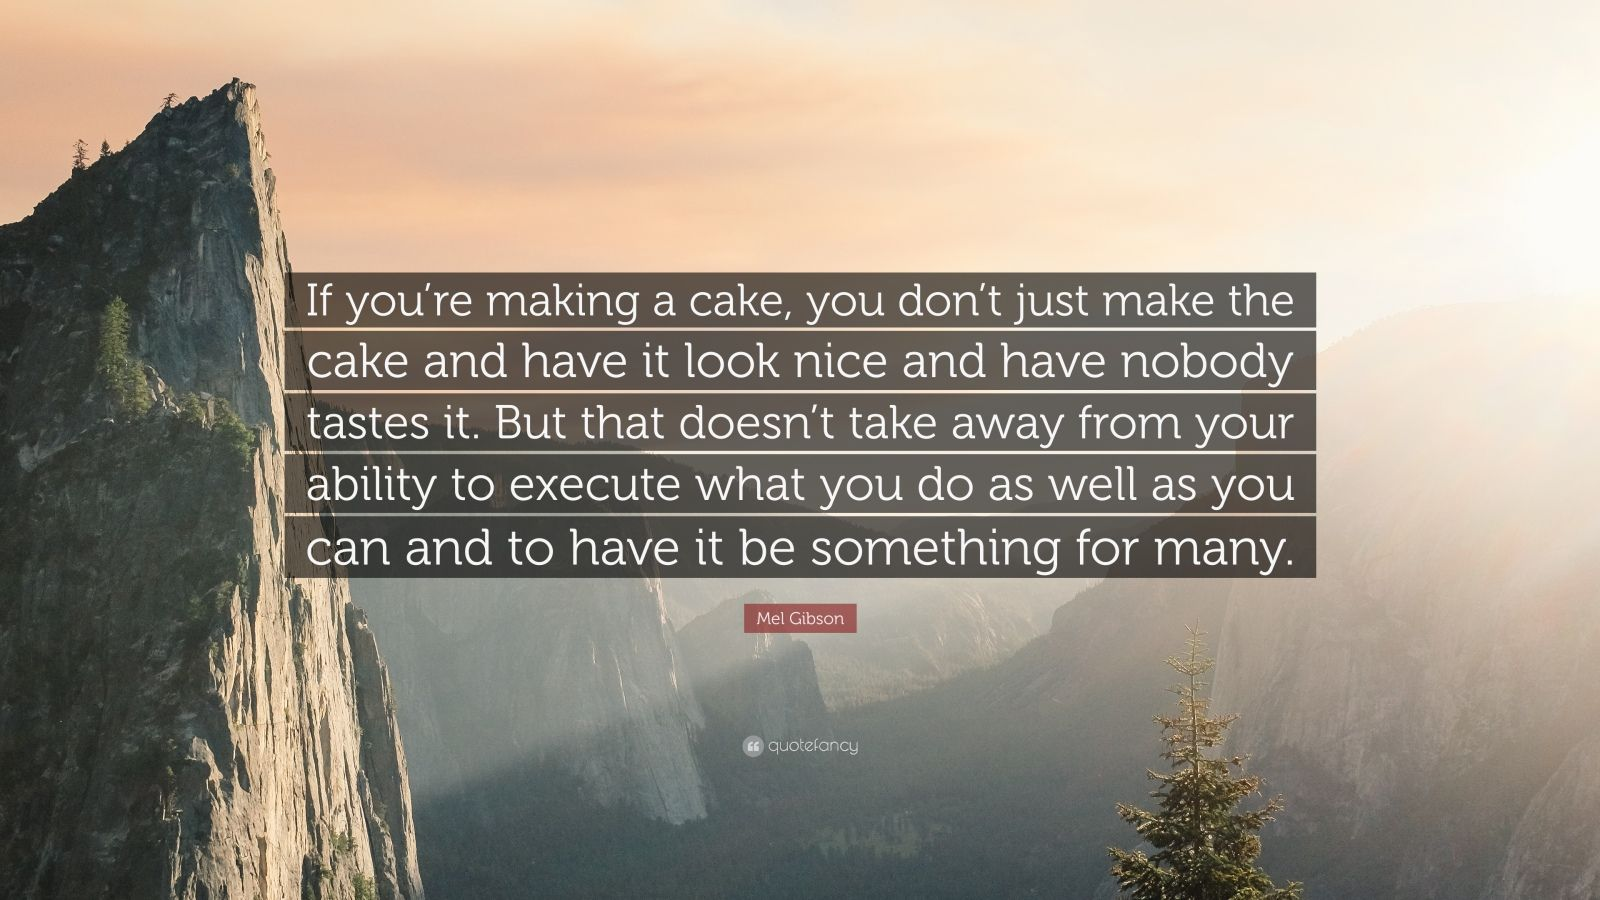 """Mel Gibson Quote: """"If you're making a cake, you don't just make the cake and have it look nice and have nobody tastes it. But that doesn't take away from your ability to execute what you do as well as you can and to have it be something for many."""""""